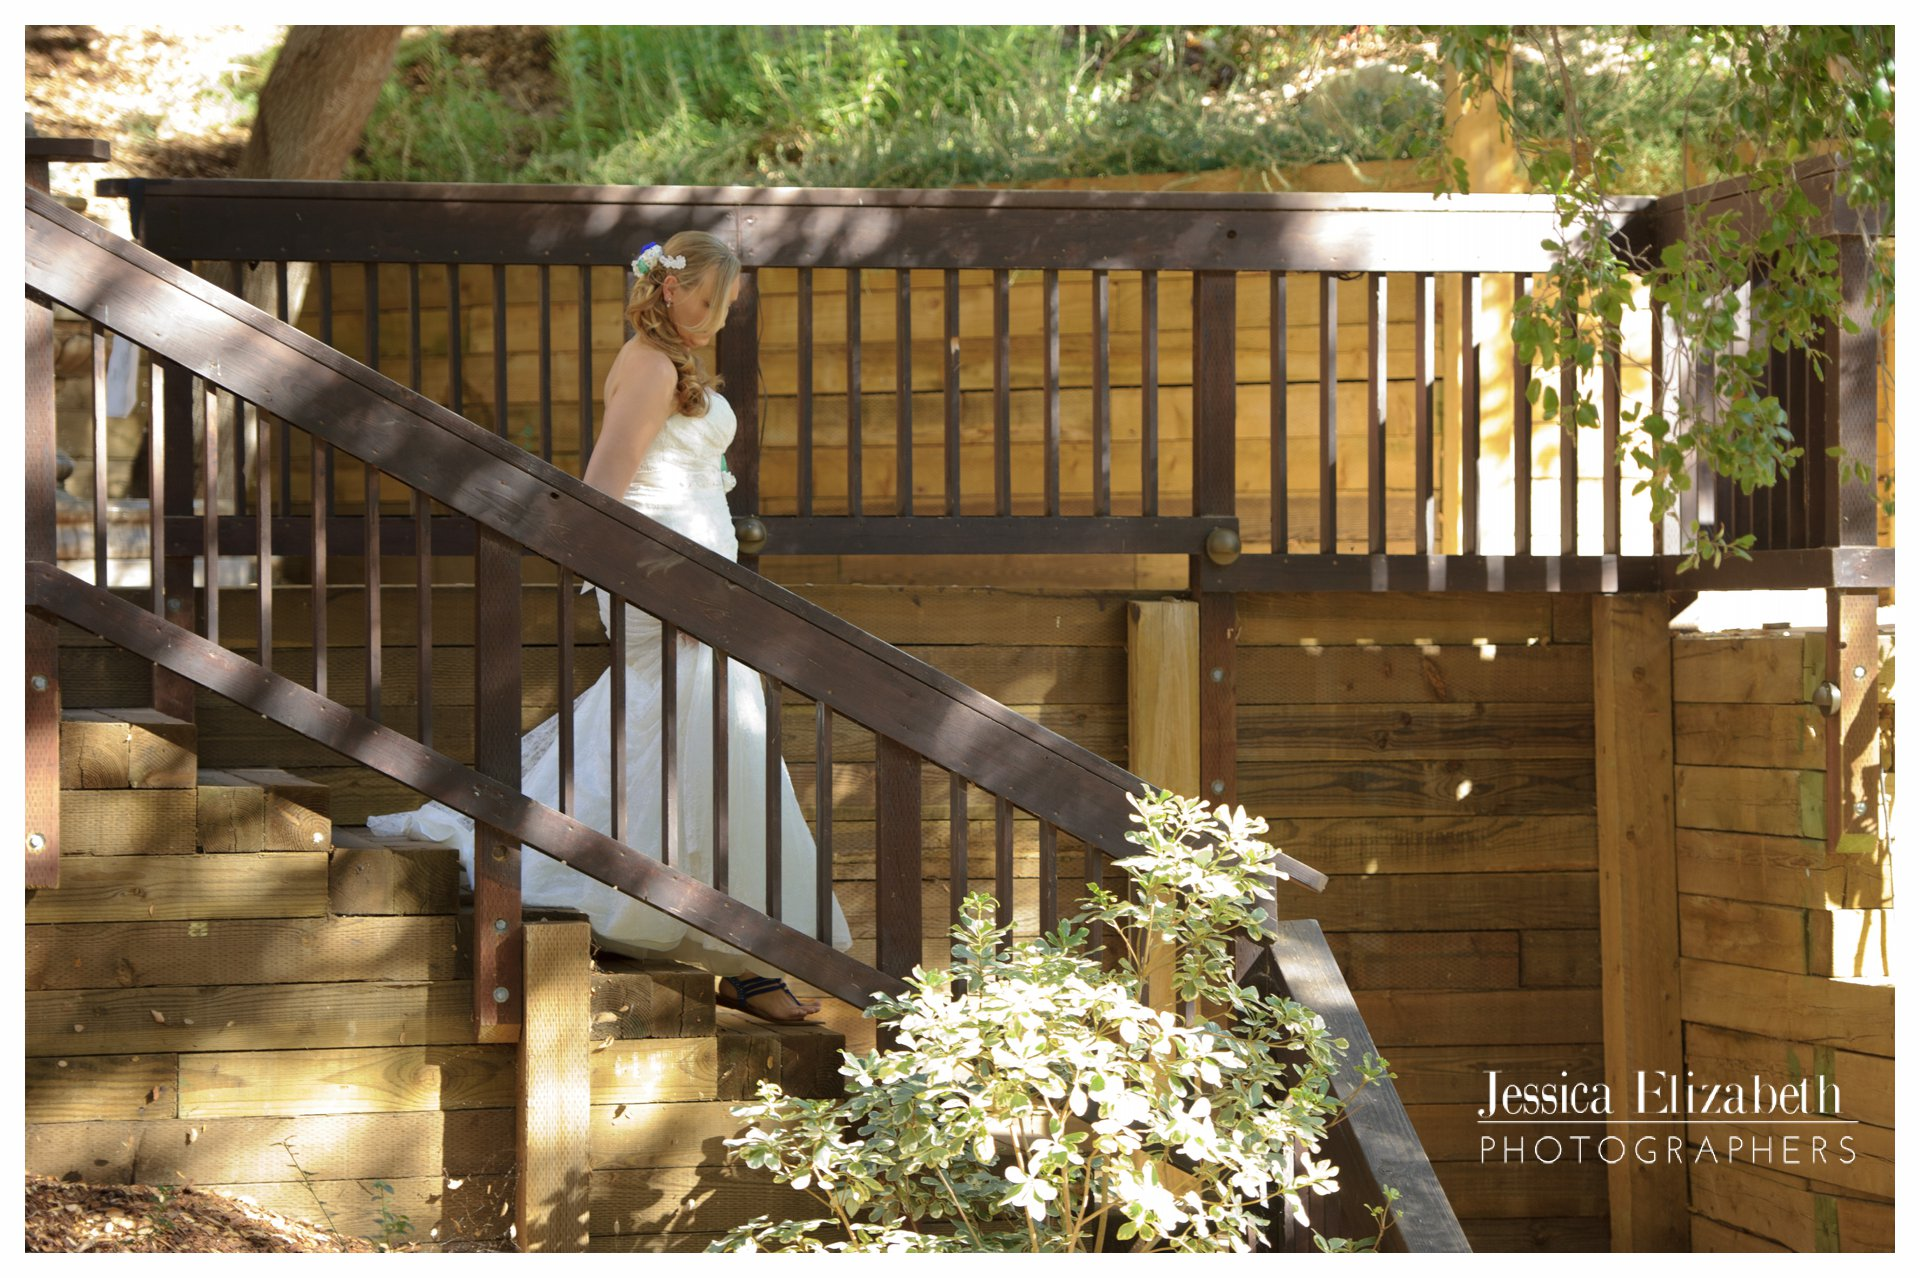 07-The 1909 Malibu Wedding photography by Jessica Elizabeth-w